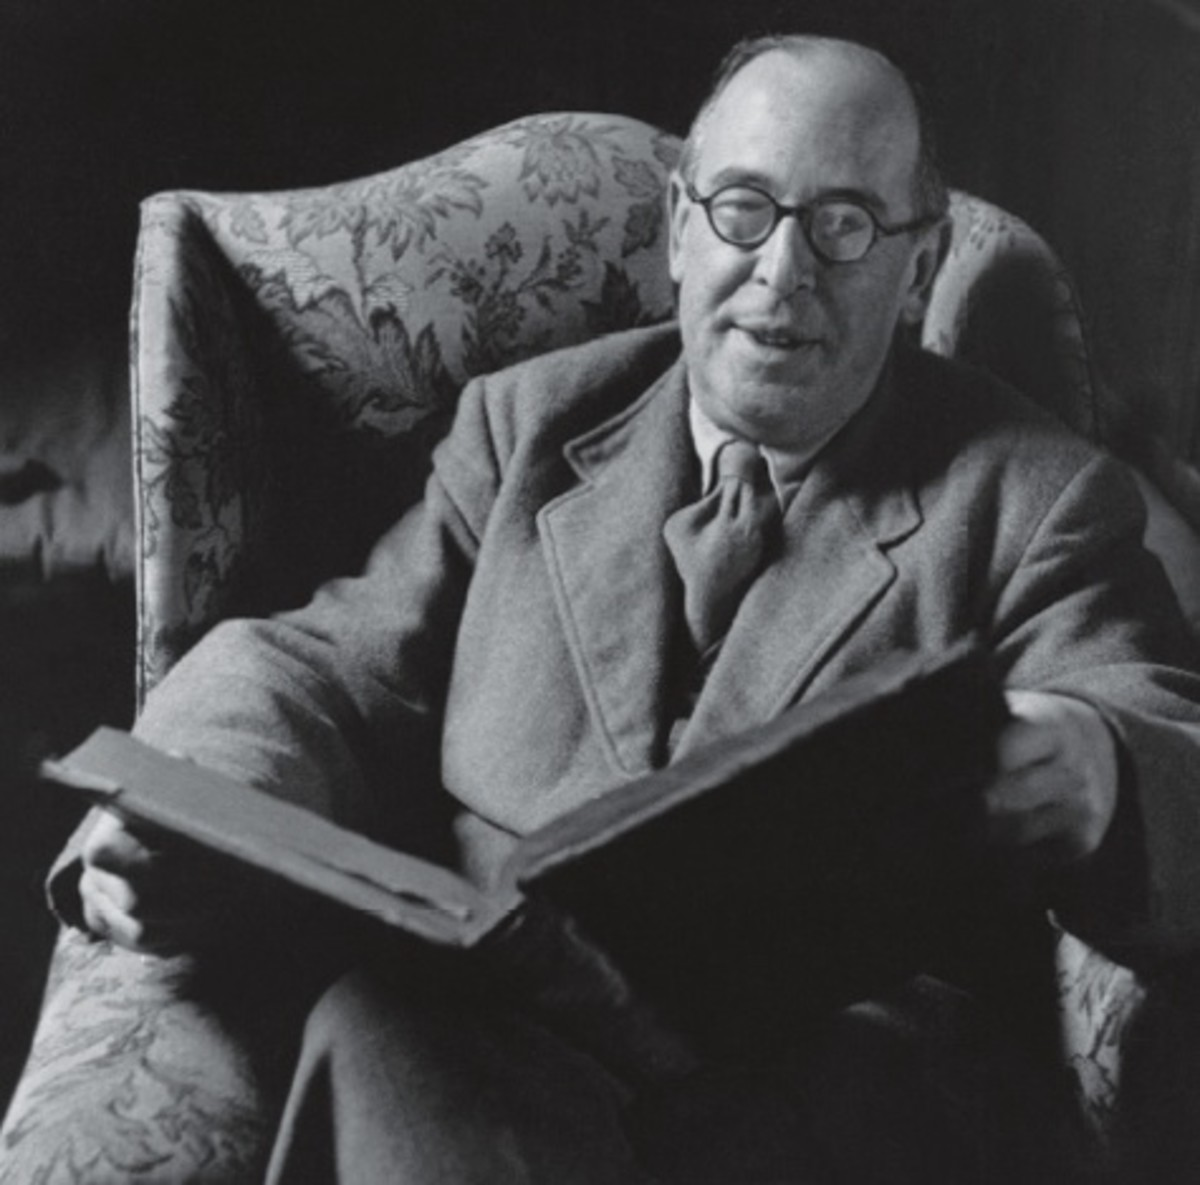 C. S. LEWIS as an older man